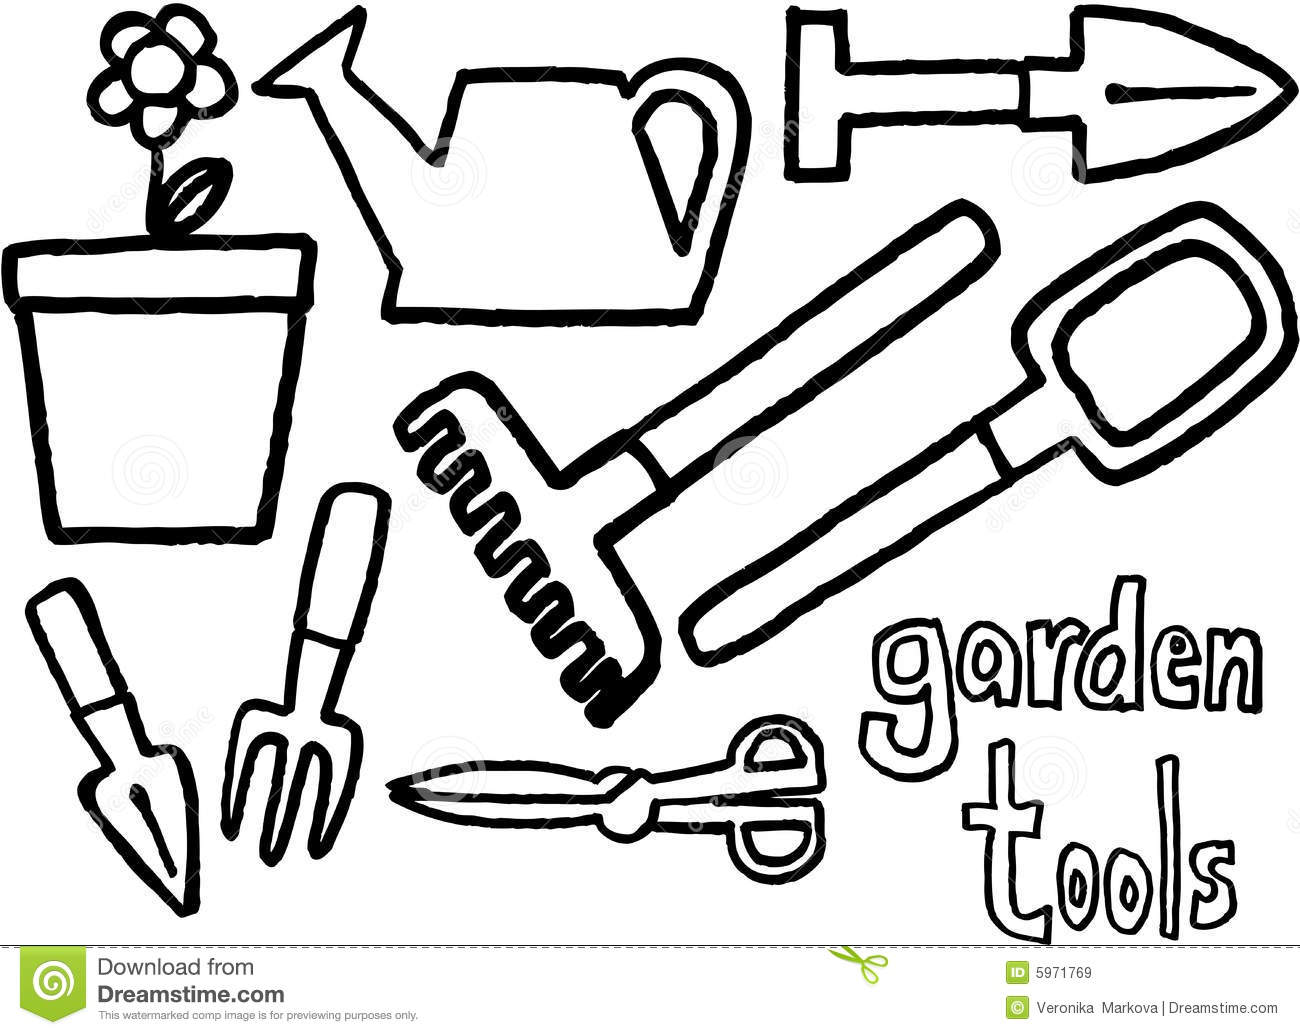 garden coloring pages preschool - photo#36